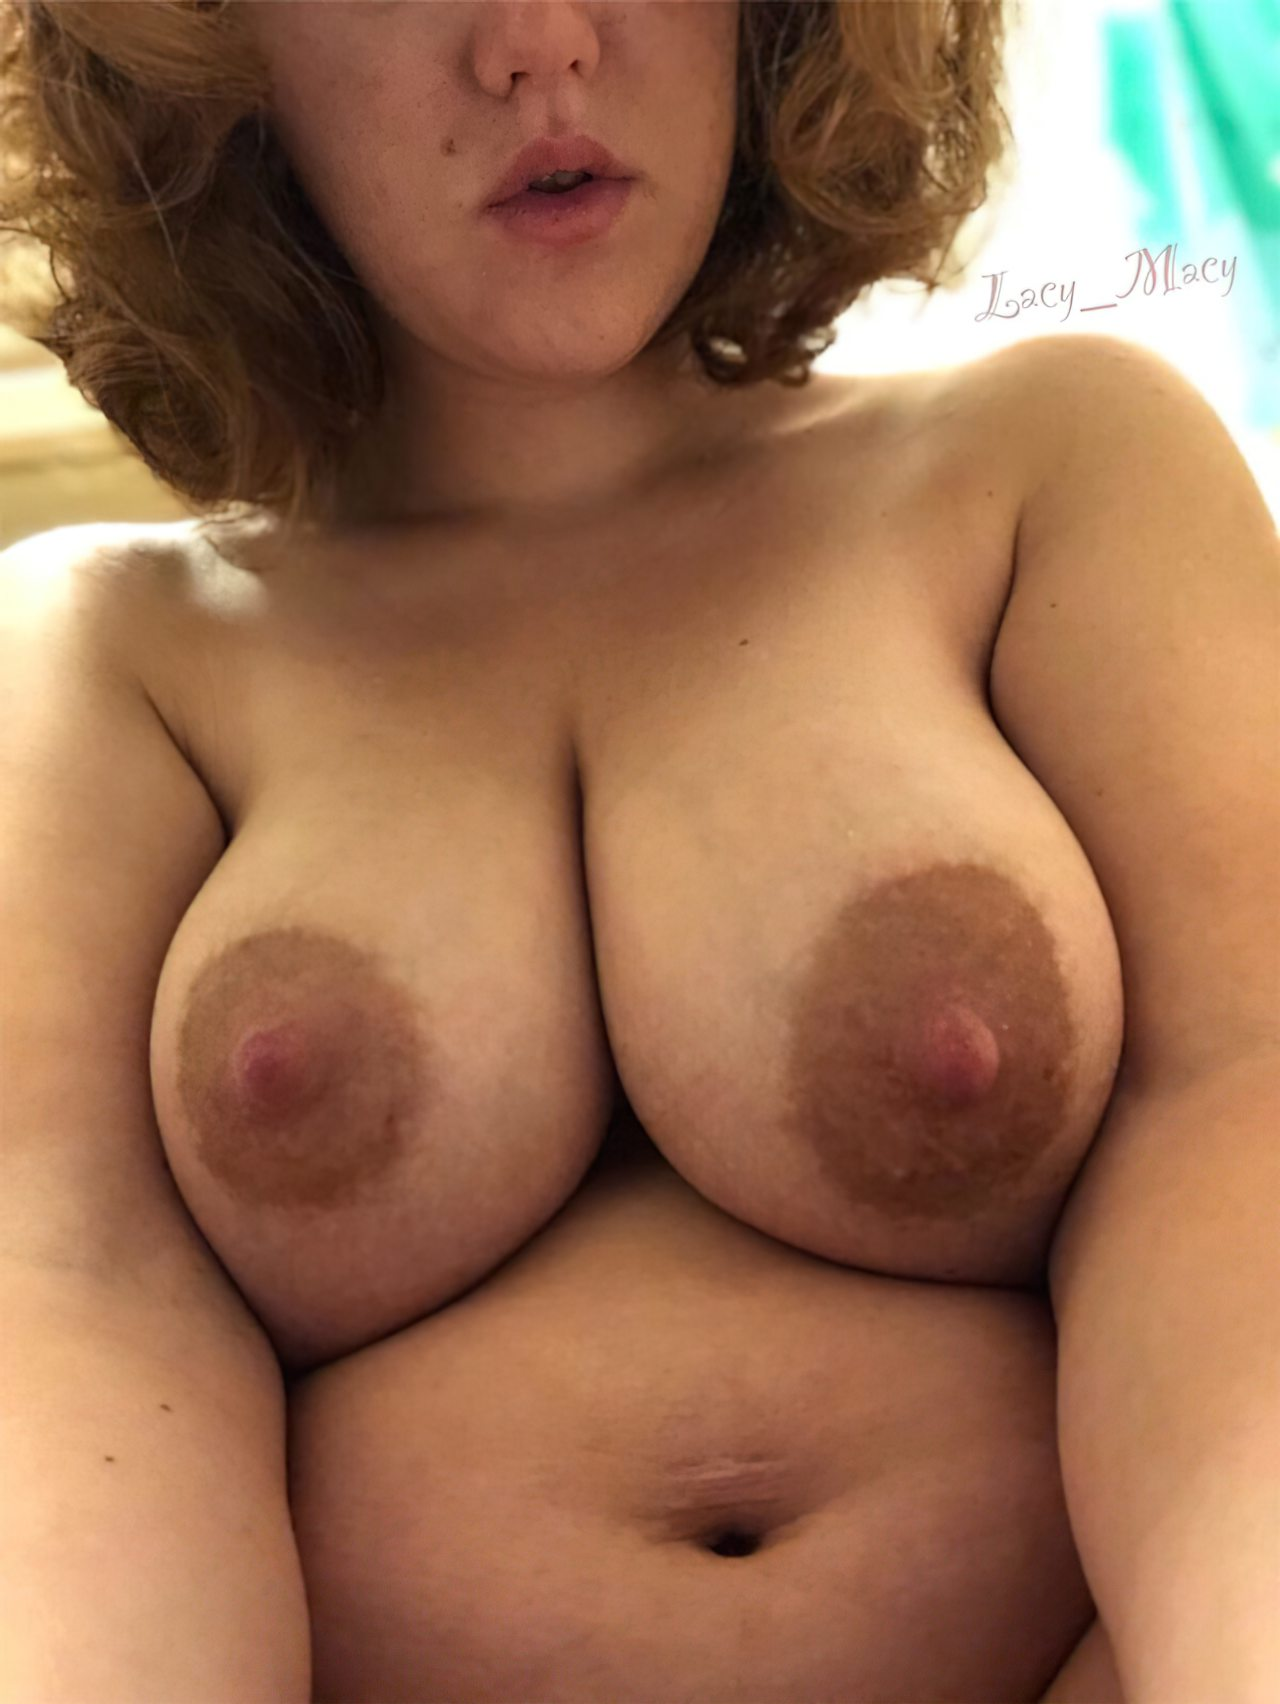 Topless (36)